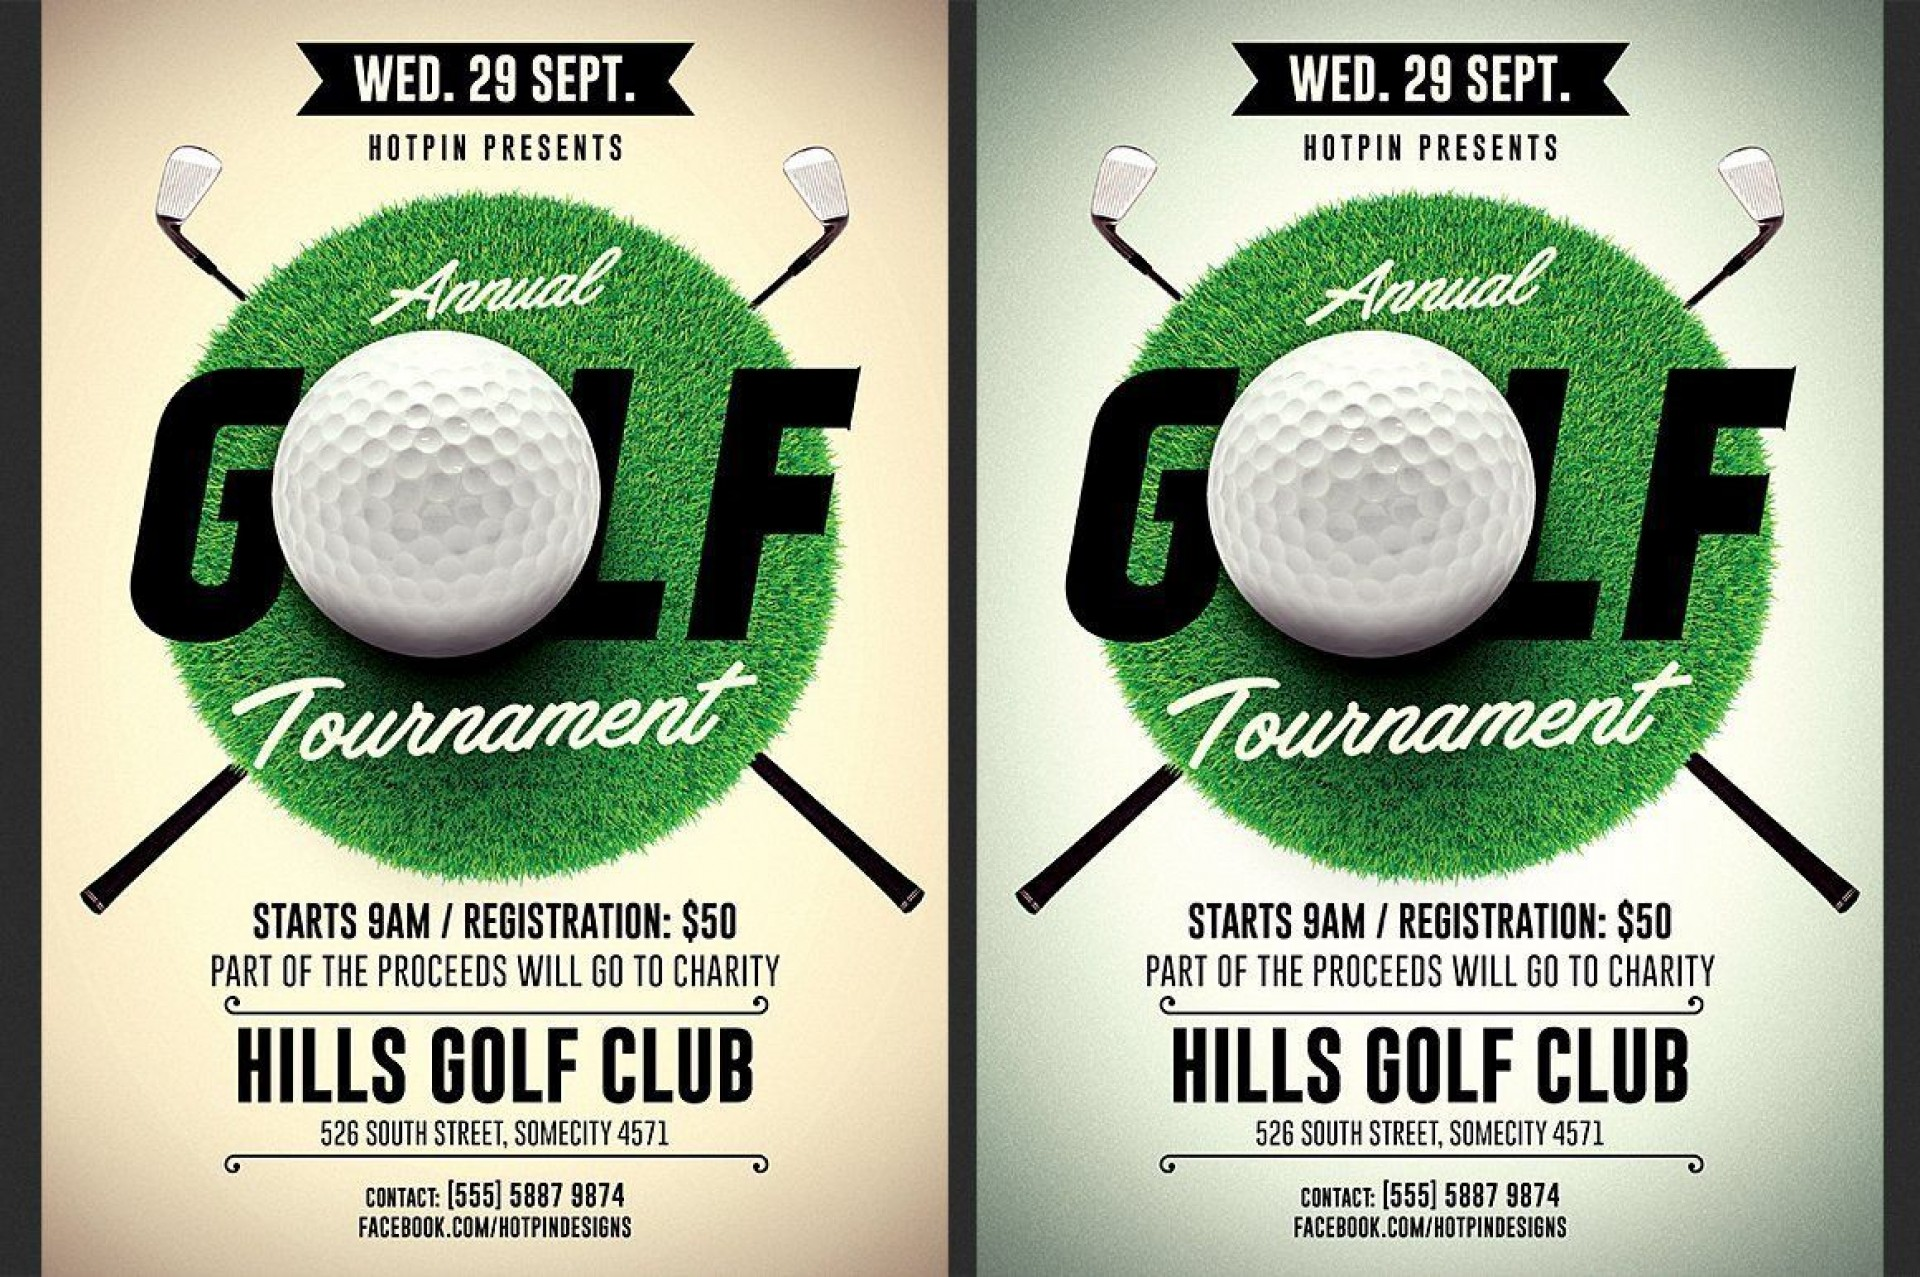 002 Awesome Golf Tournament Flyer Template High Definition  Word Free Pdf1920